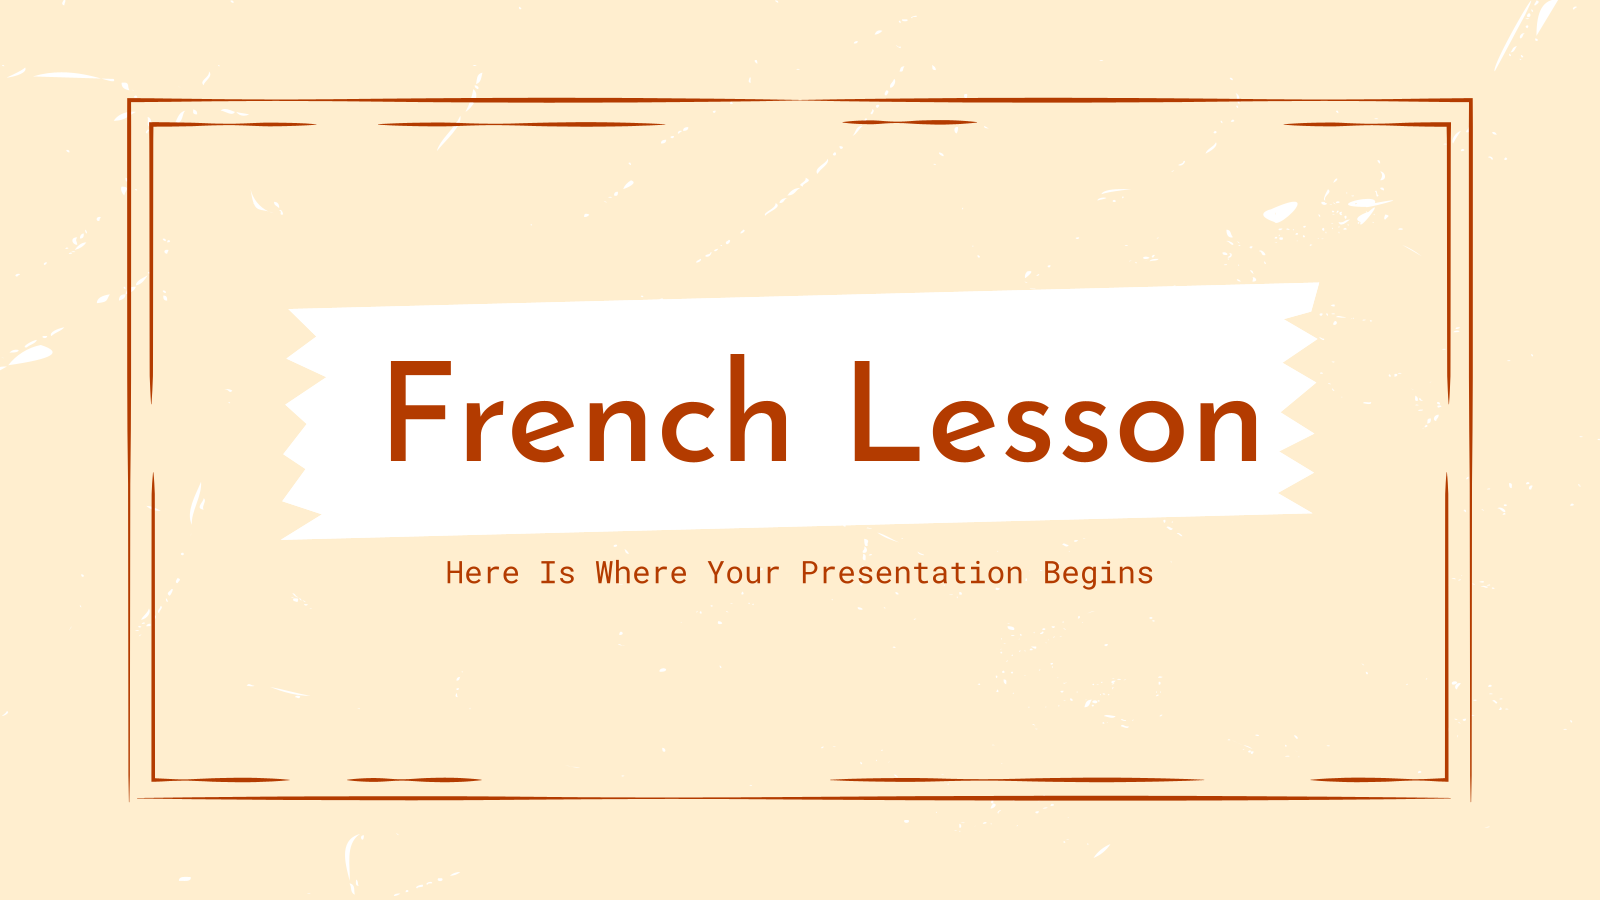 French Lesson presentation template